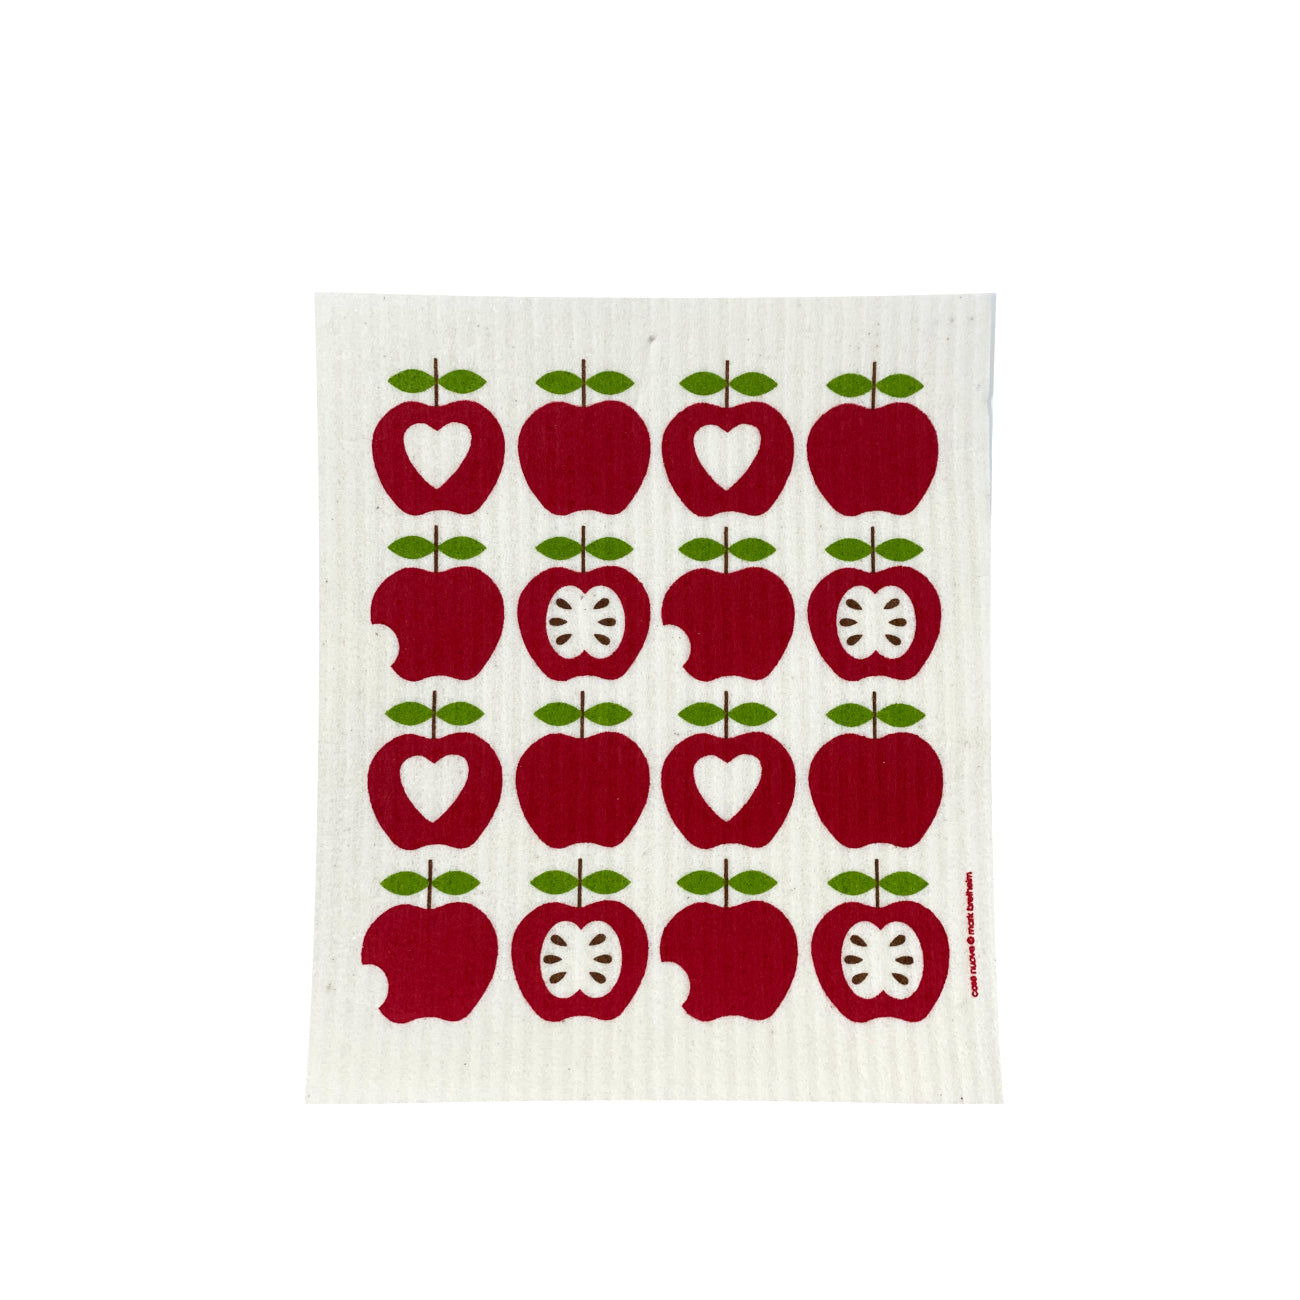 16 Apples - Swedish Dishcloth